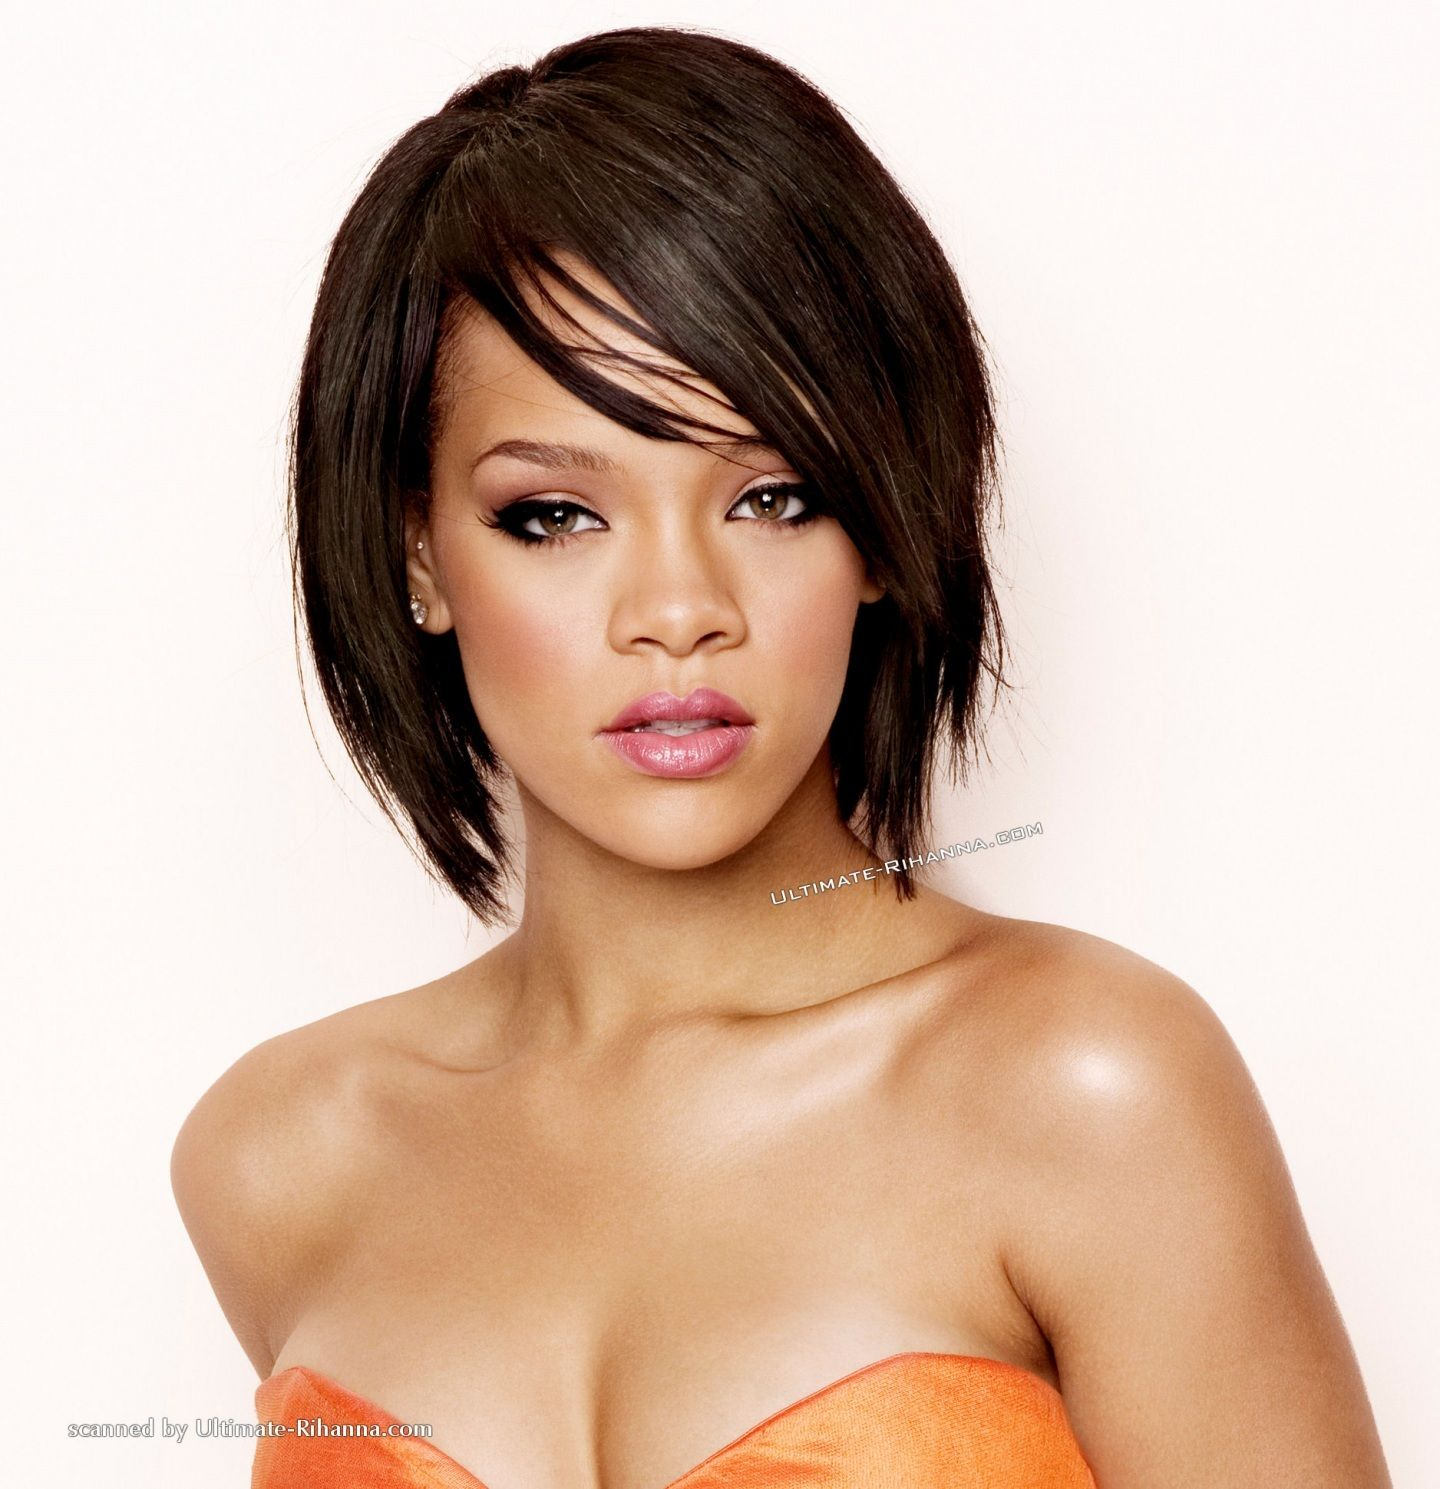 rihanna-bob-hairstyles-front-and-back-view-905995475.jpg ...